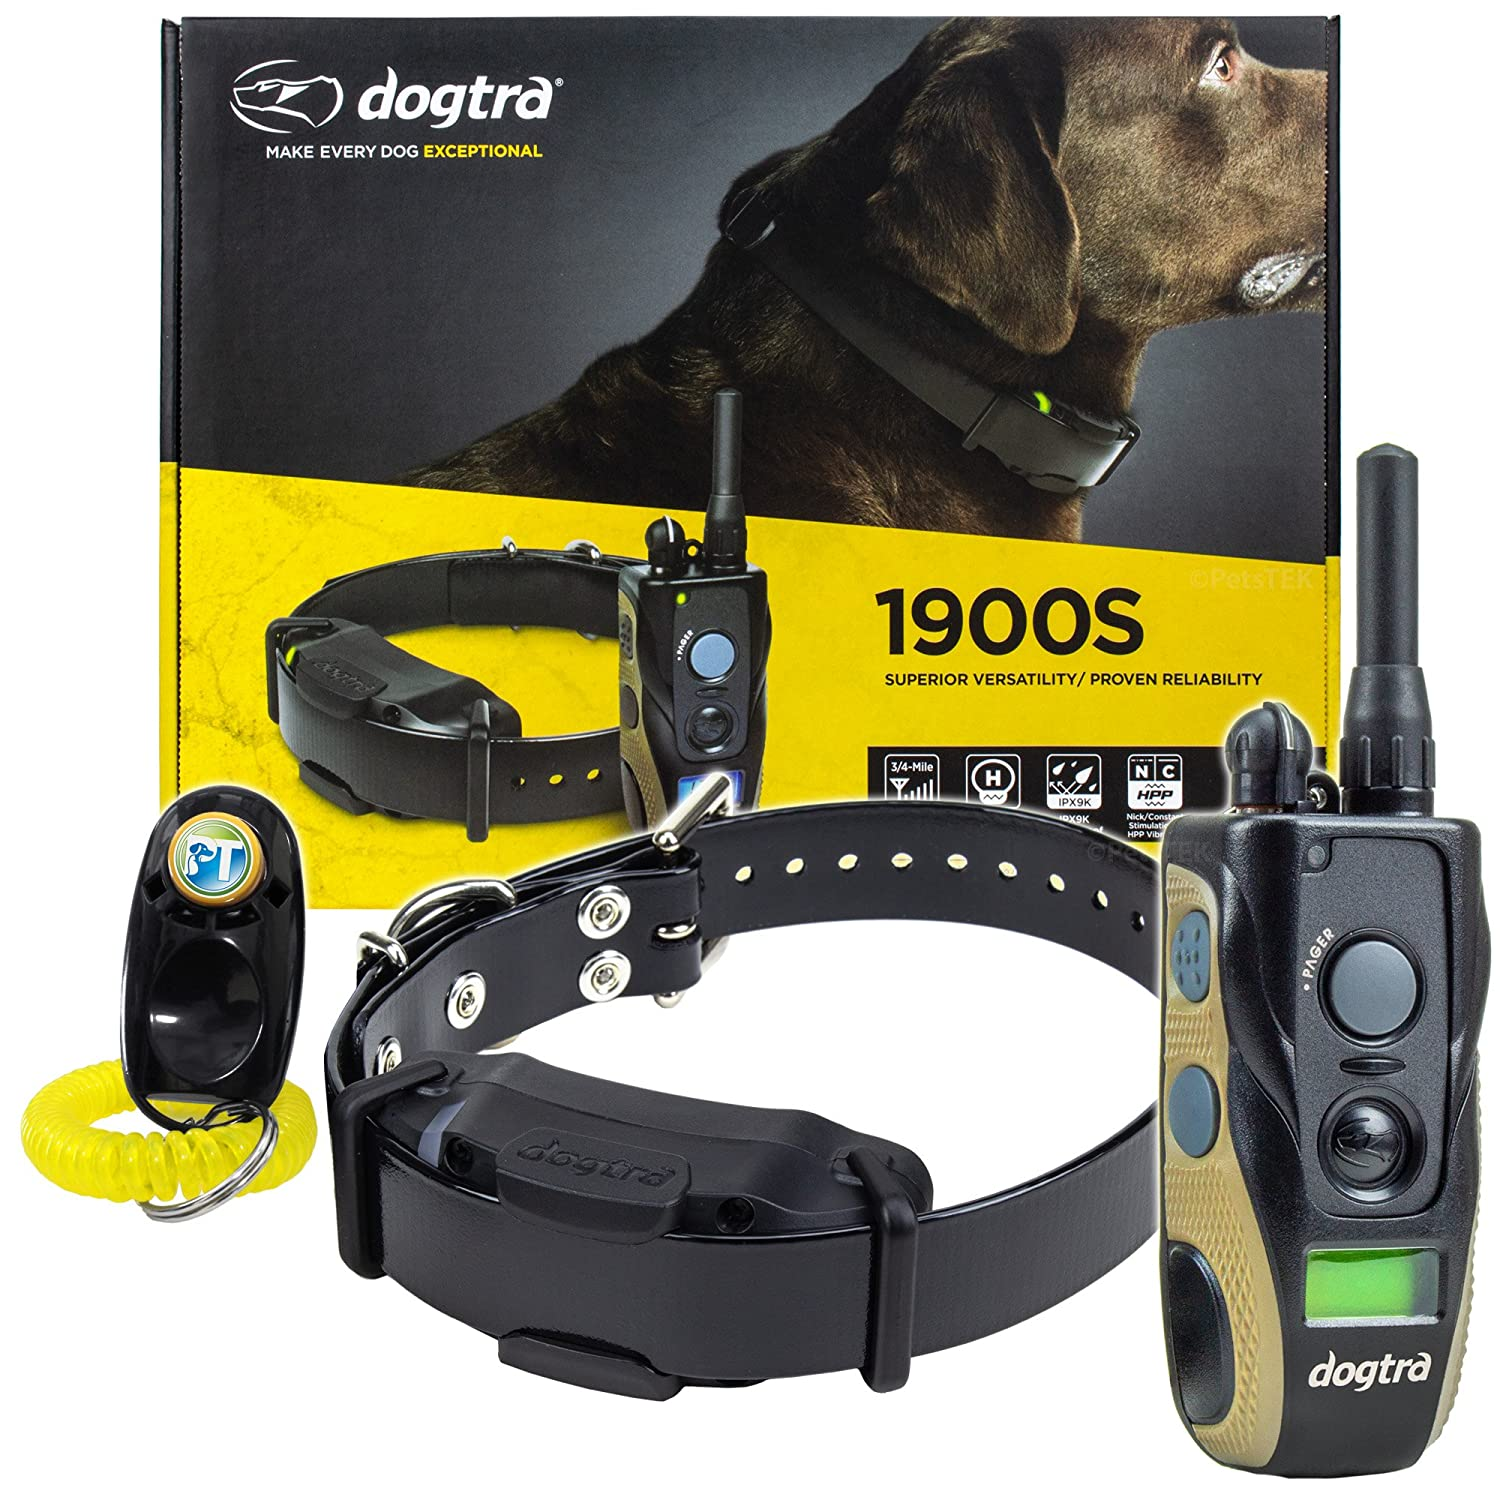 Dogtra 1900S 1902S Remote Training Collar – 3 4 Mile Range, Waterproof, Rechargeable, Shock, Vibration – Includes PetsTEK Dog Training Clicker